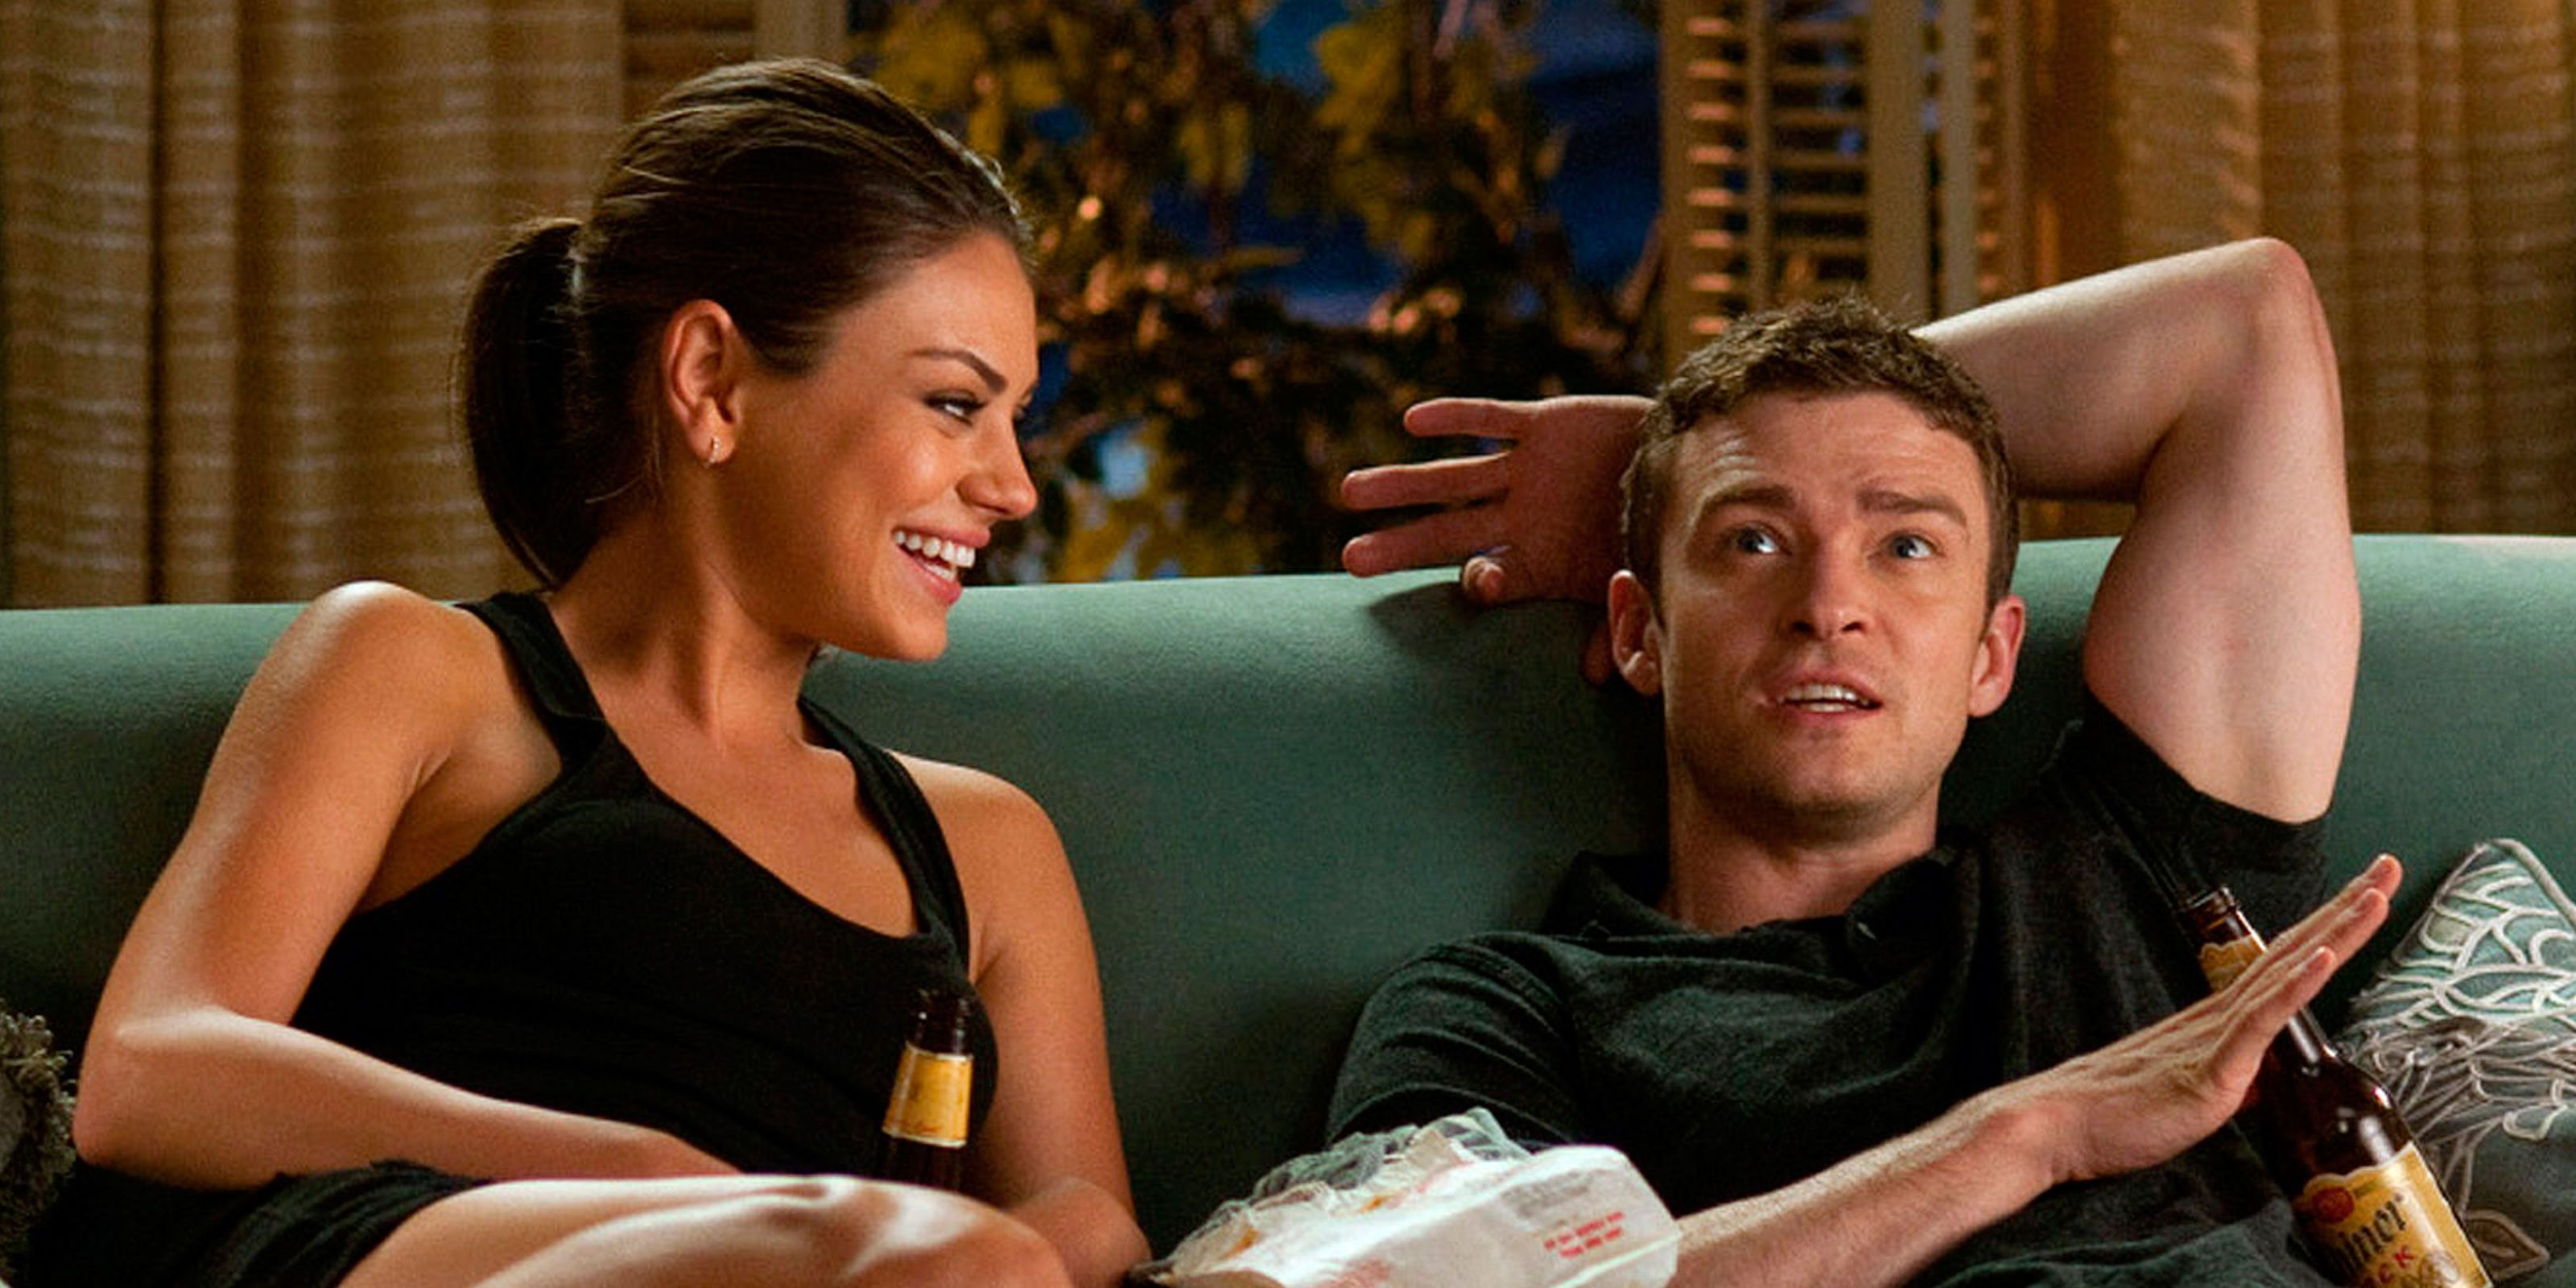 Do friends with benefits end up hookup